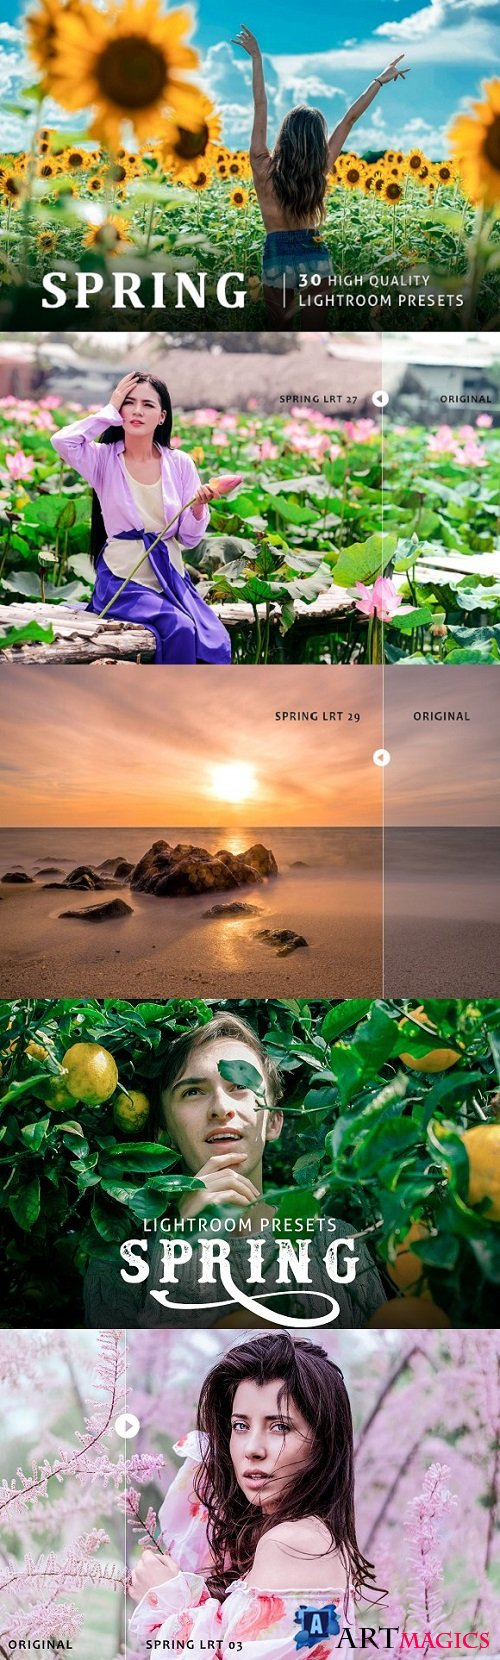 Spring Lightroom Presets 1967652